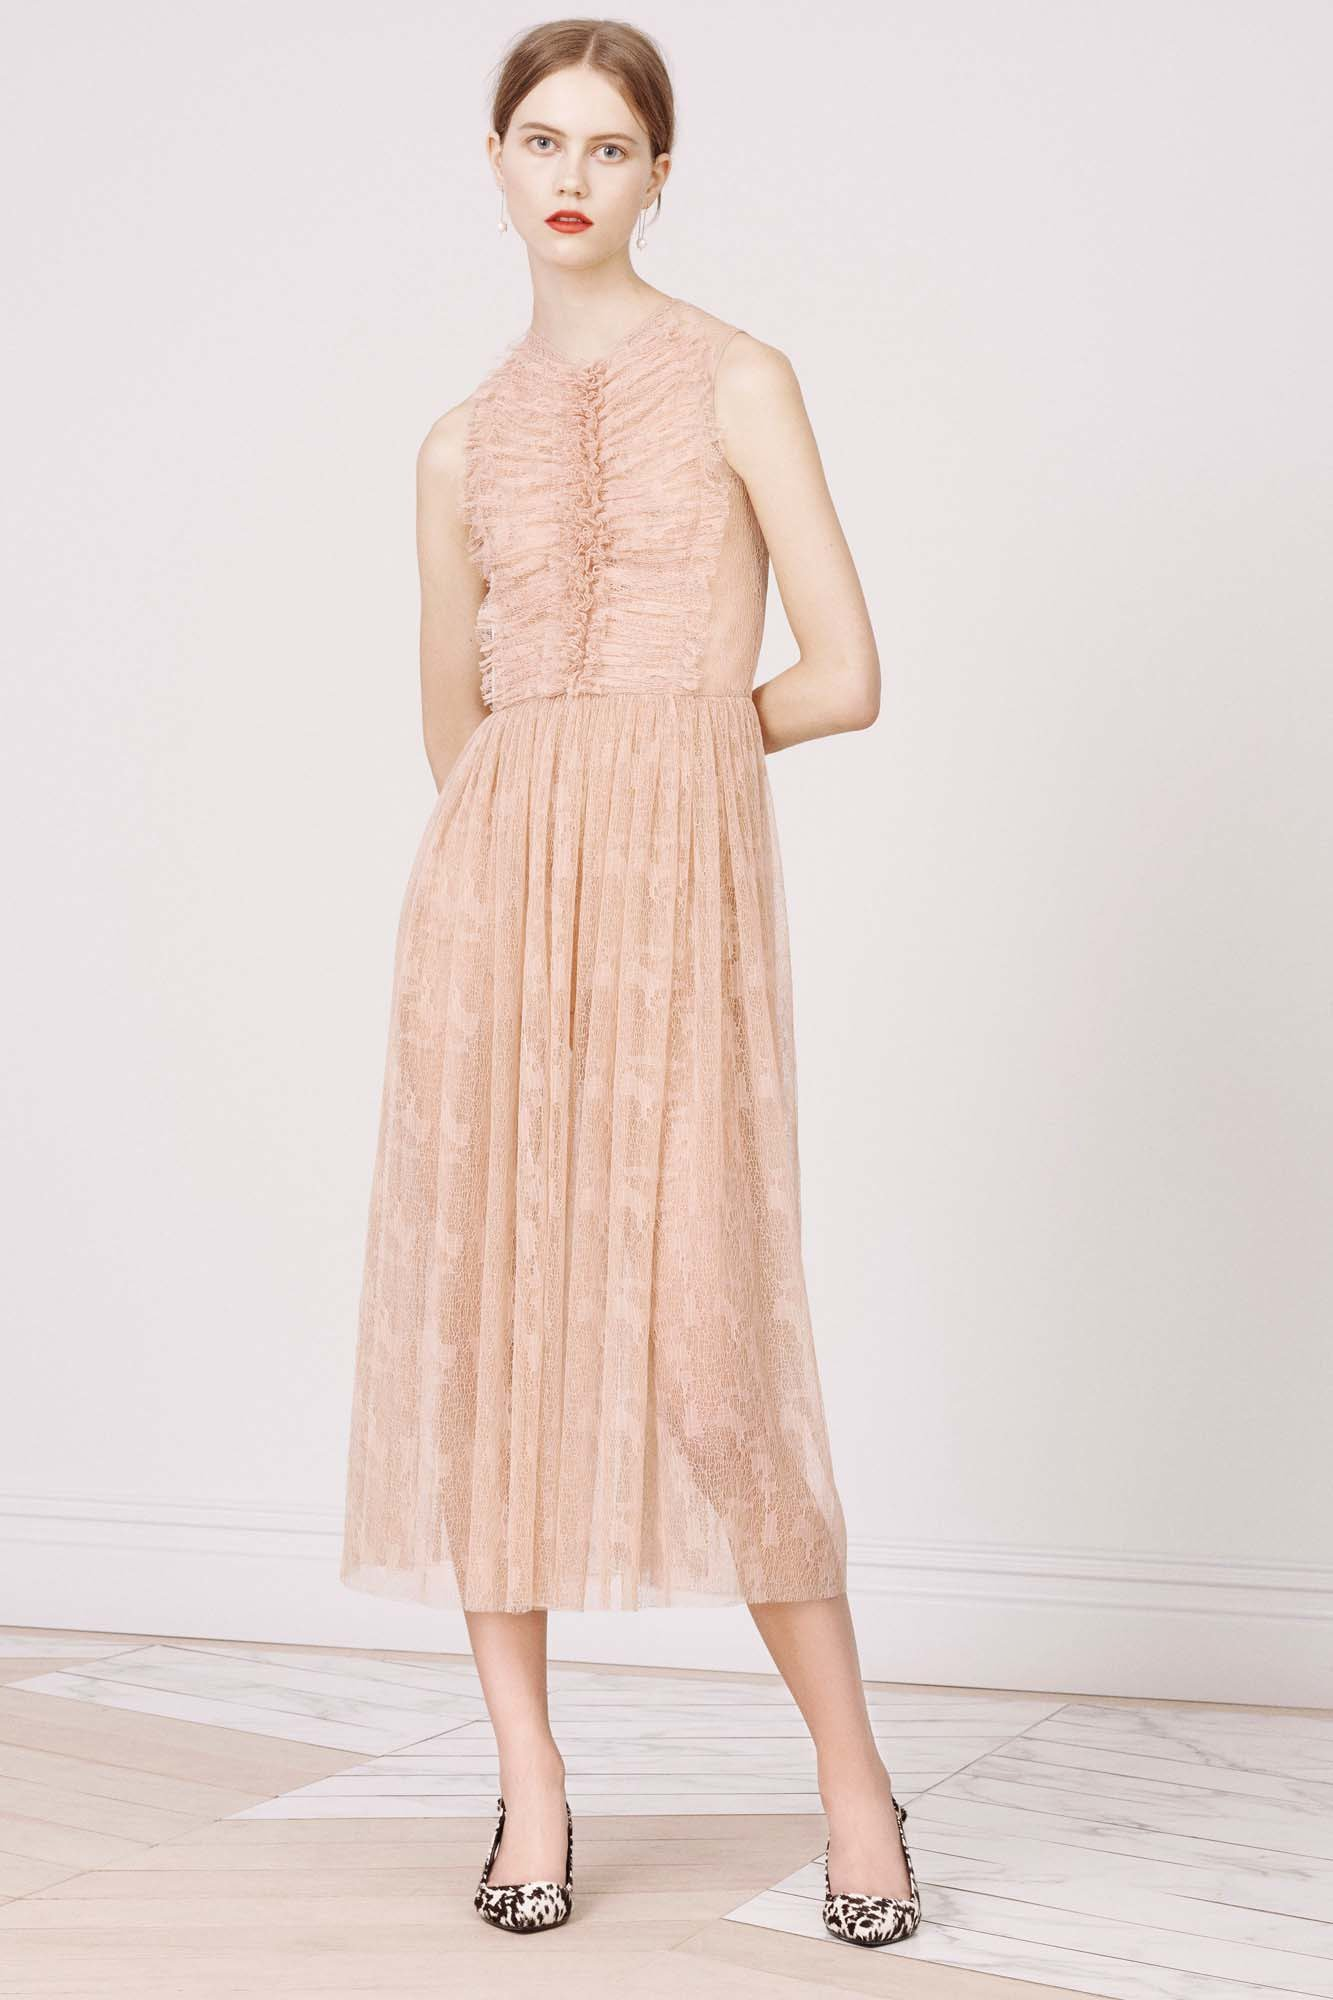 RT @FashionWeek: .@JasonWu's Pre-Fall 2016 collection featured delicate florals and ladylike pinks: https://t.co/ltBgiGunSj. https://t.co/R…